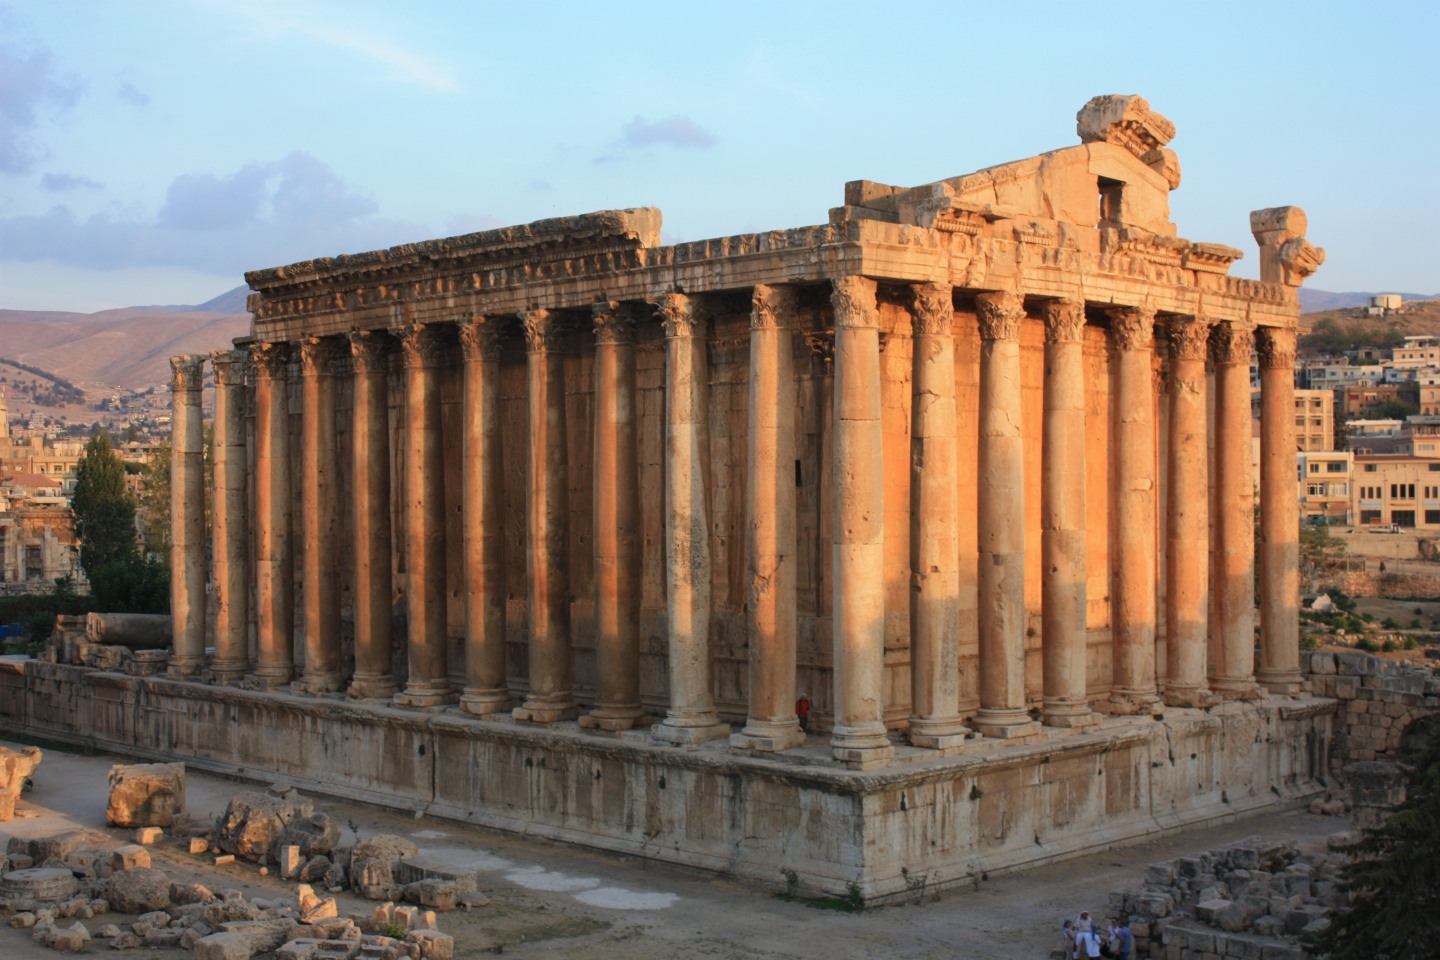 Image of the Temple of Bacchus in Baalbek, Libanon.